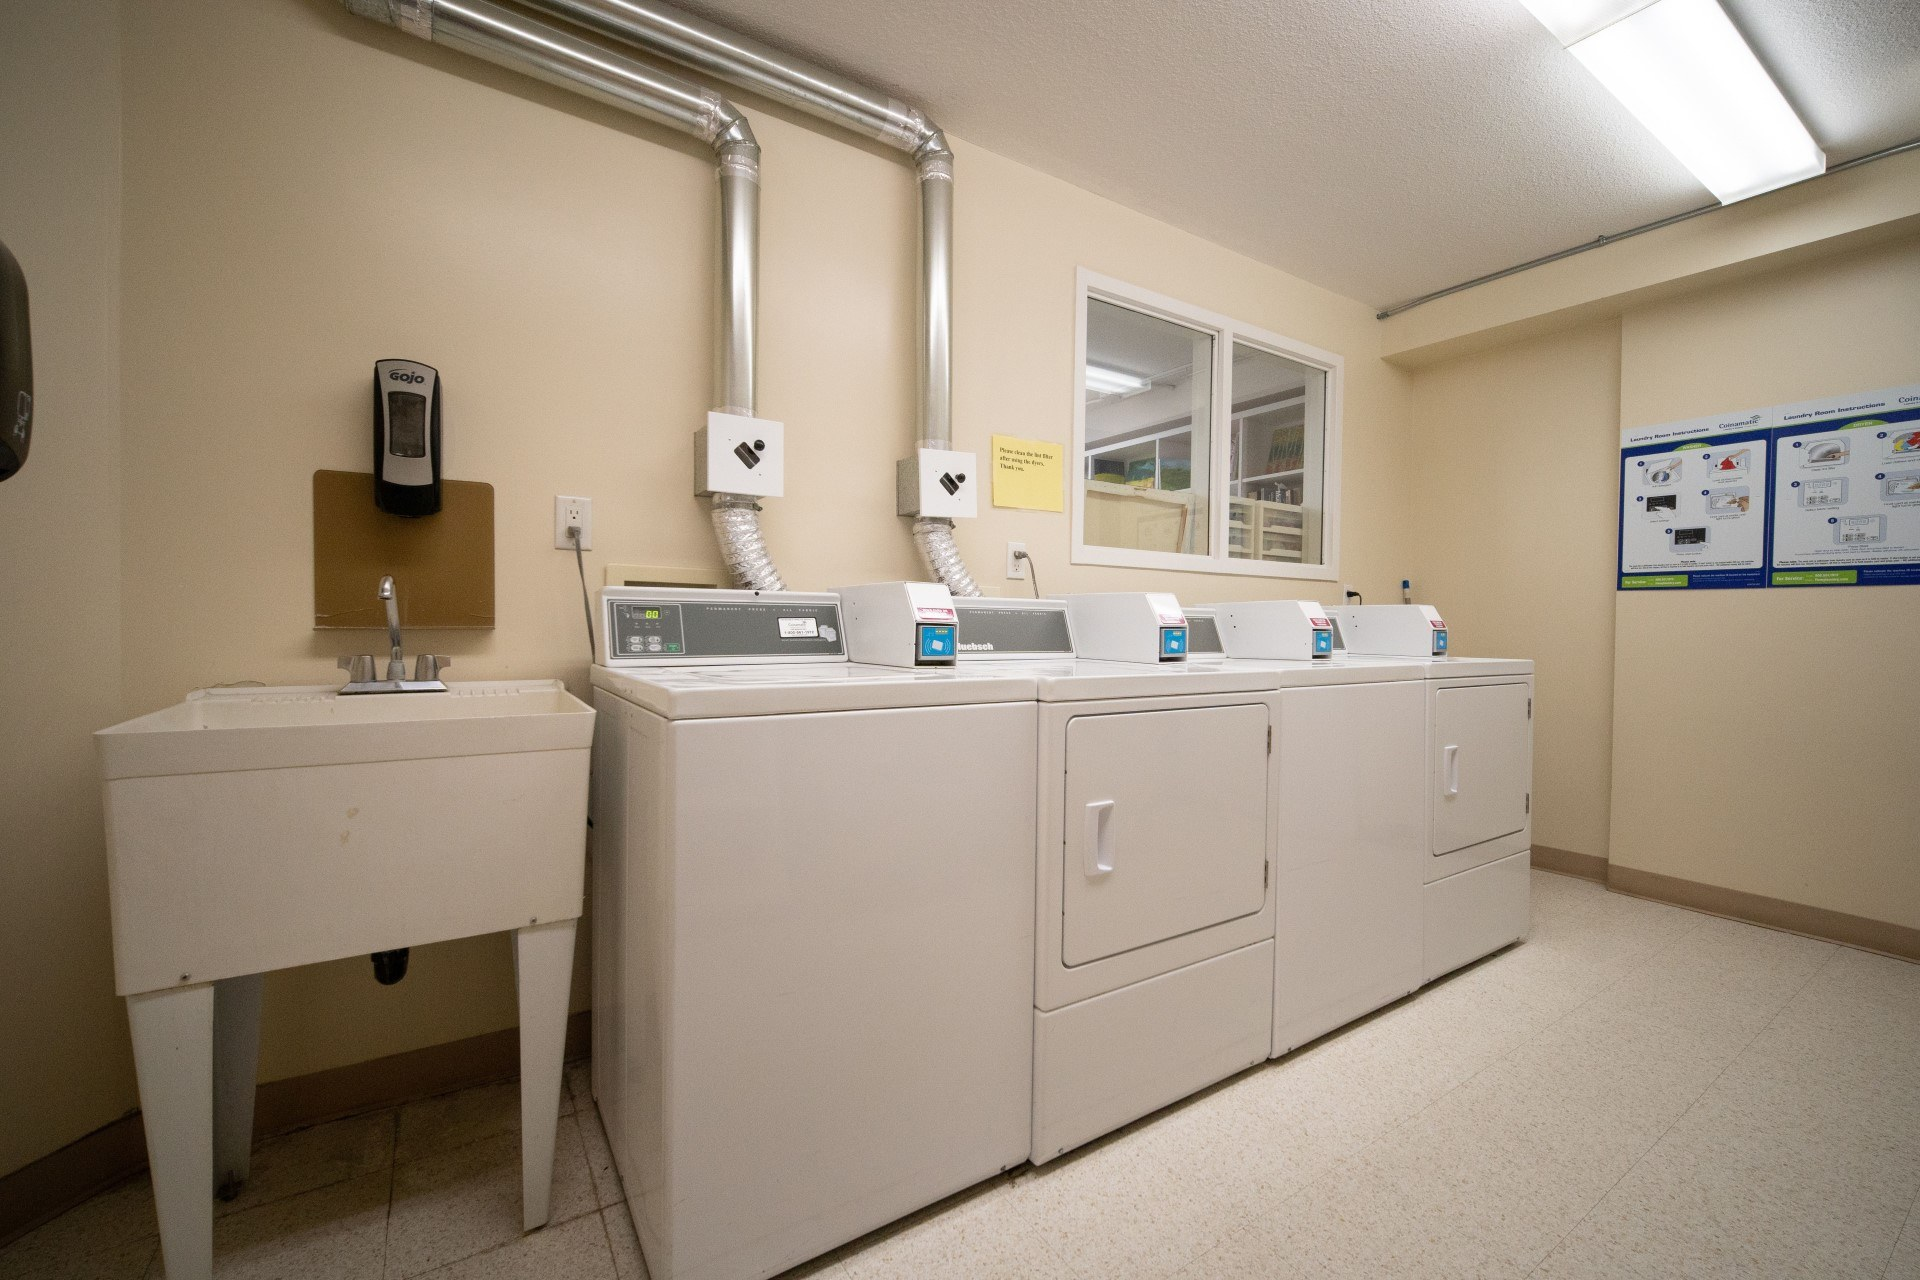 Shared laundry room in Spruce community